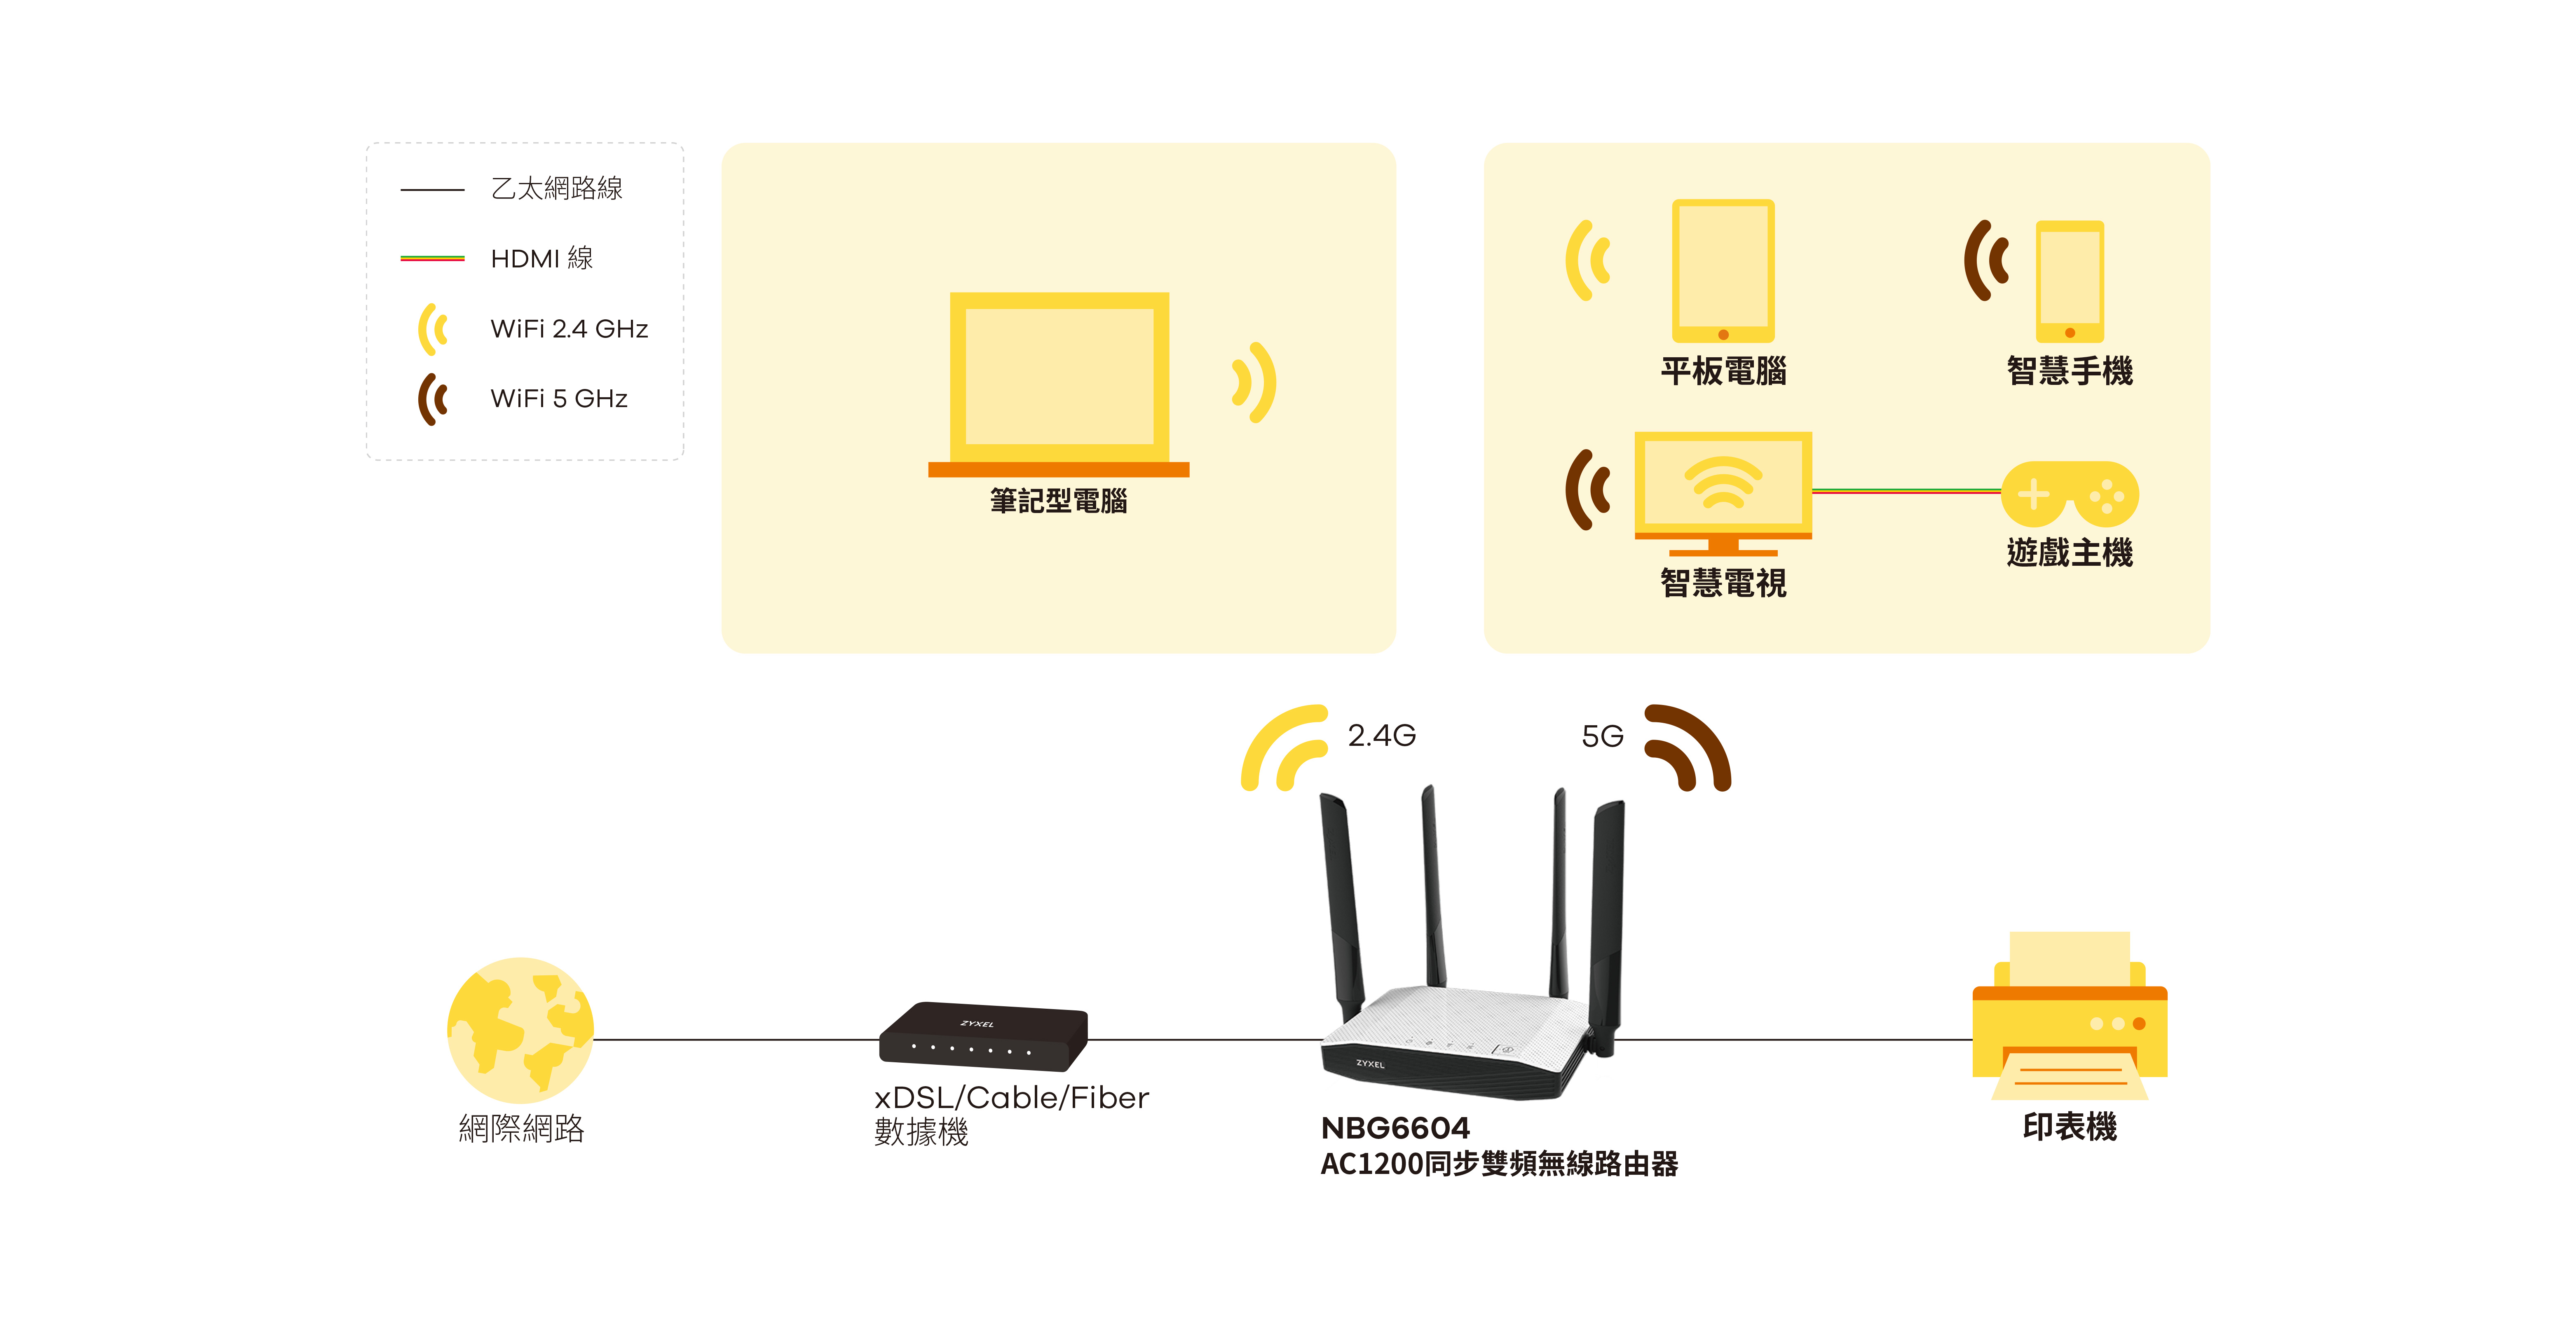 NBG6604, AC1200 Dual-Band Wireless Router